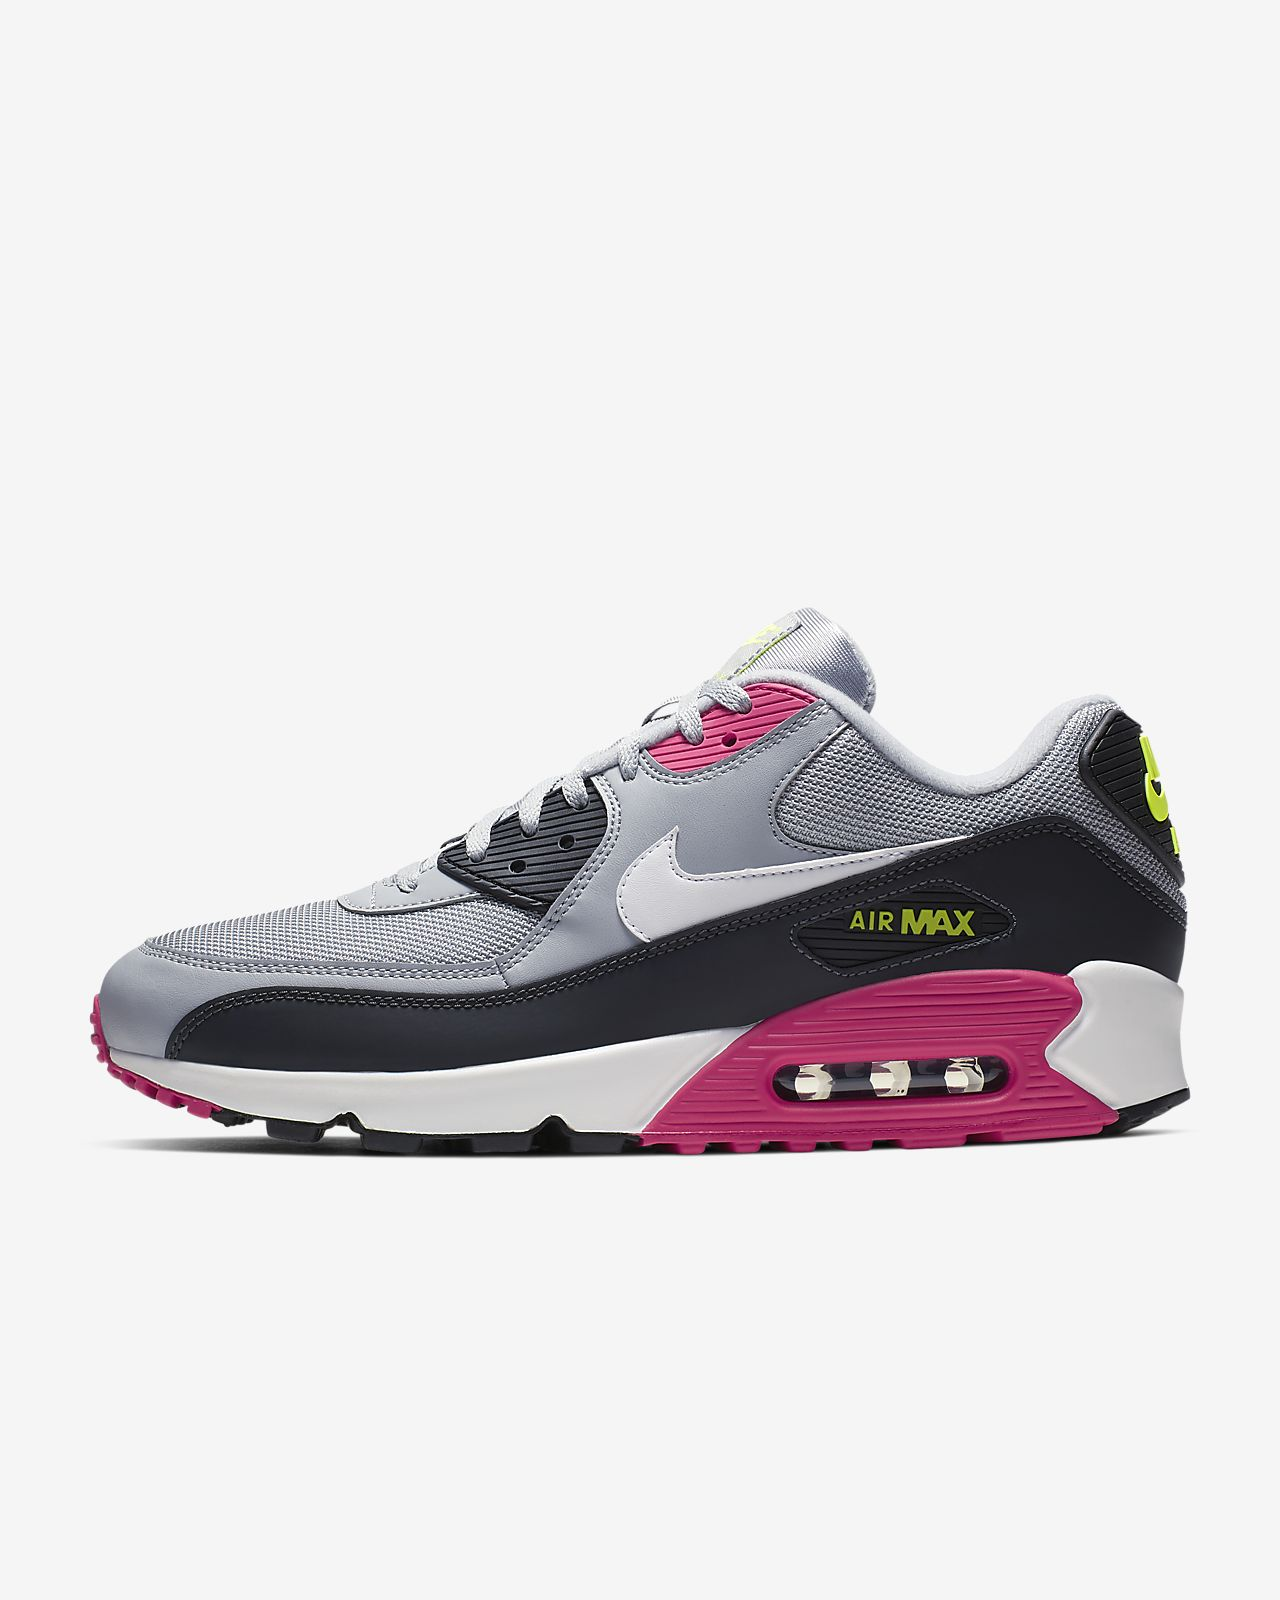 9aa6d2f2728 Nike Air Max 90 Essential Men's Shoe. Nike.com AT